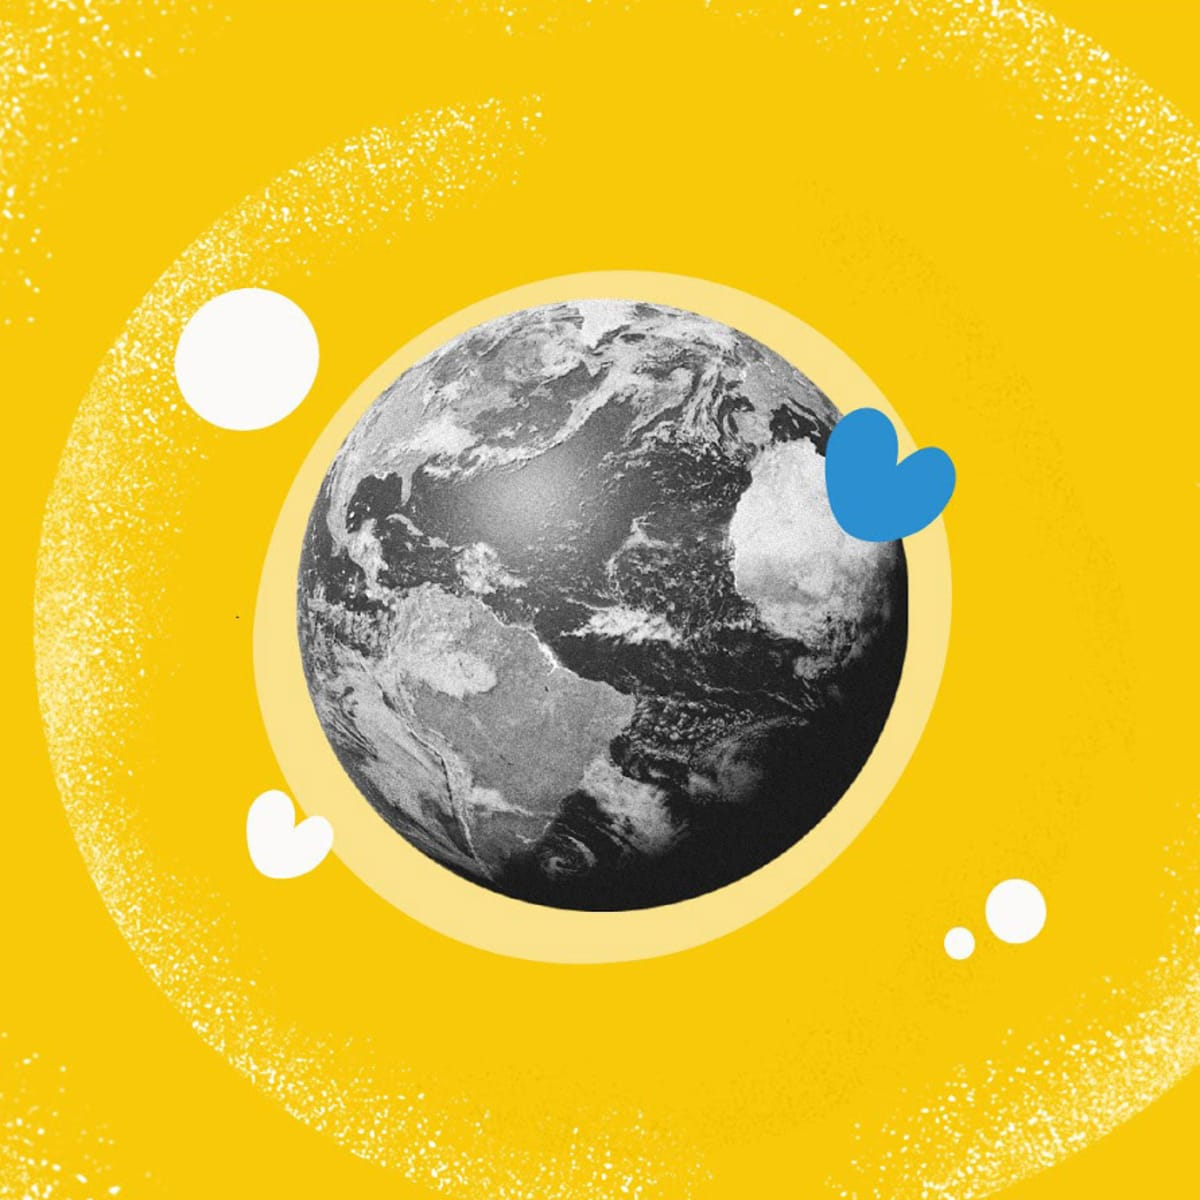 planet earth on yellow background